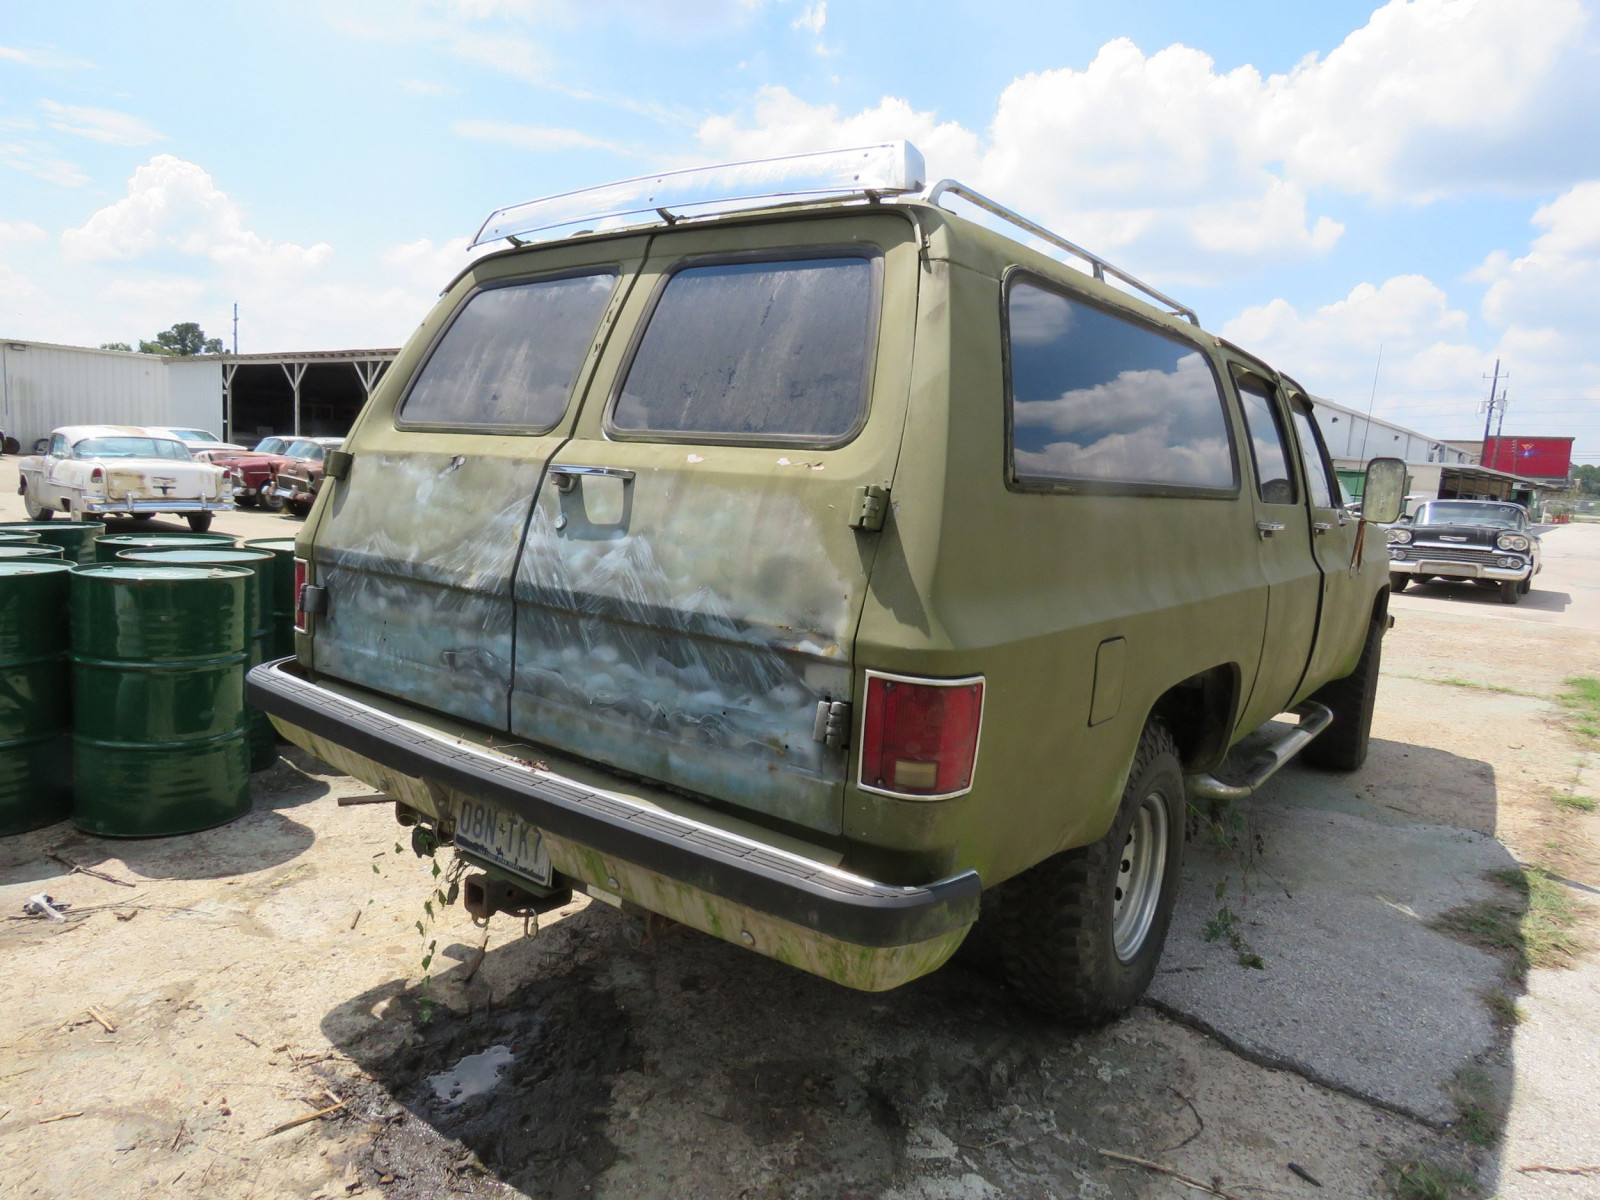 1990 Chevrolet Suburban 4x4 Project - Image 4